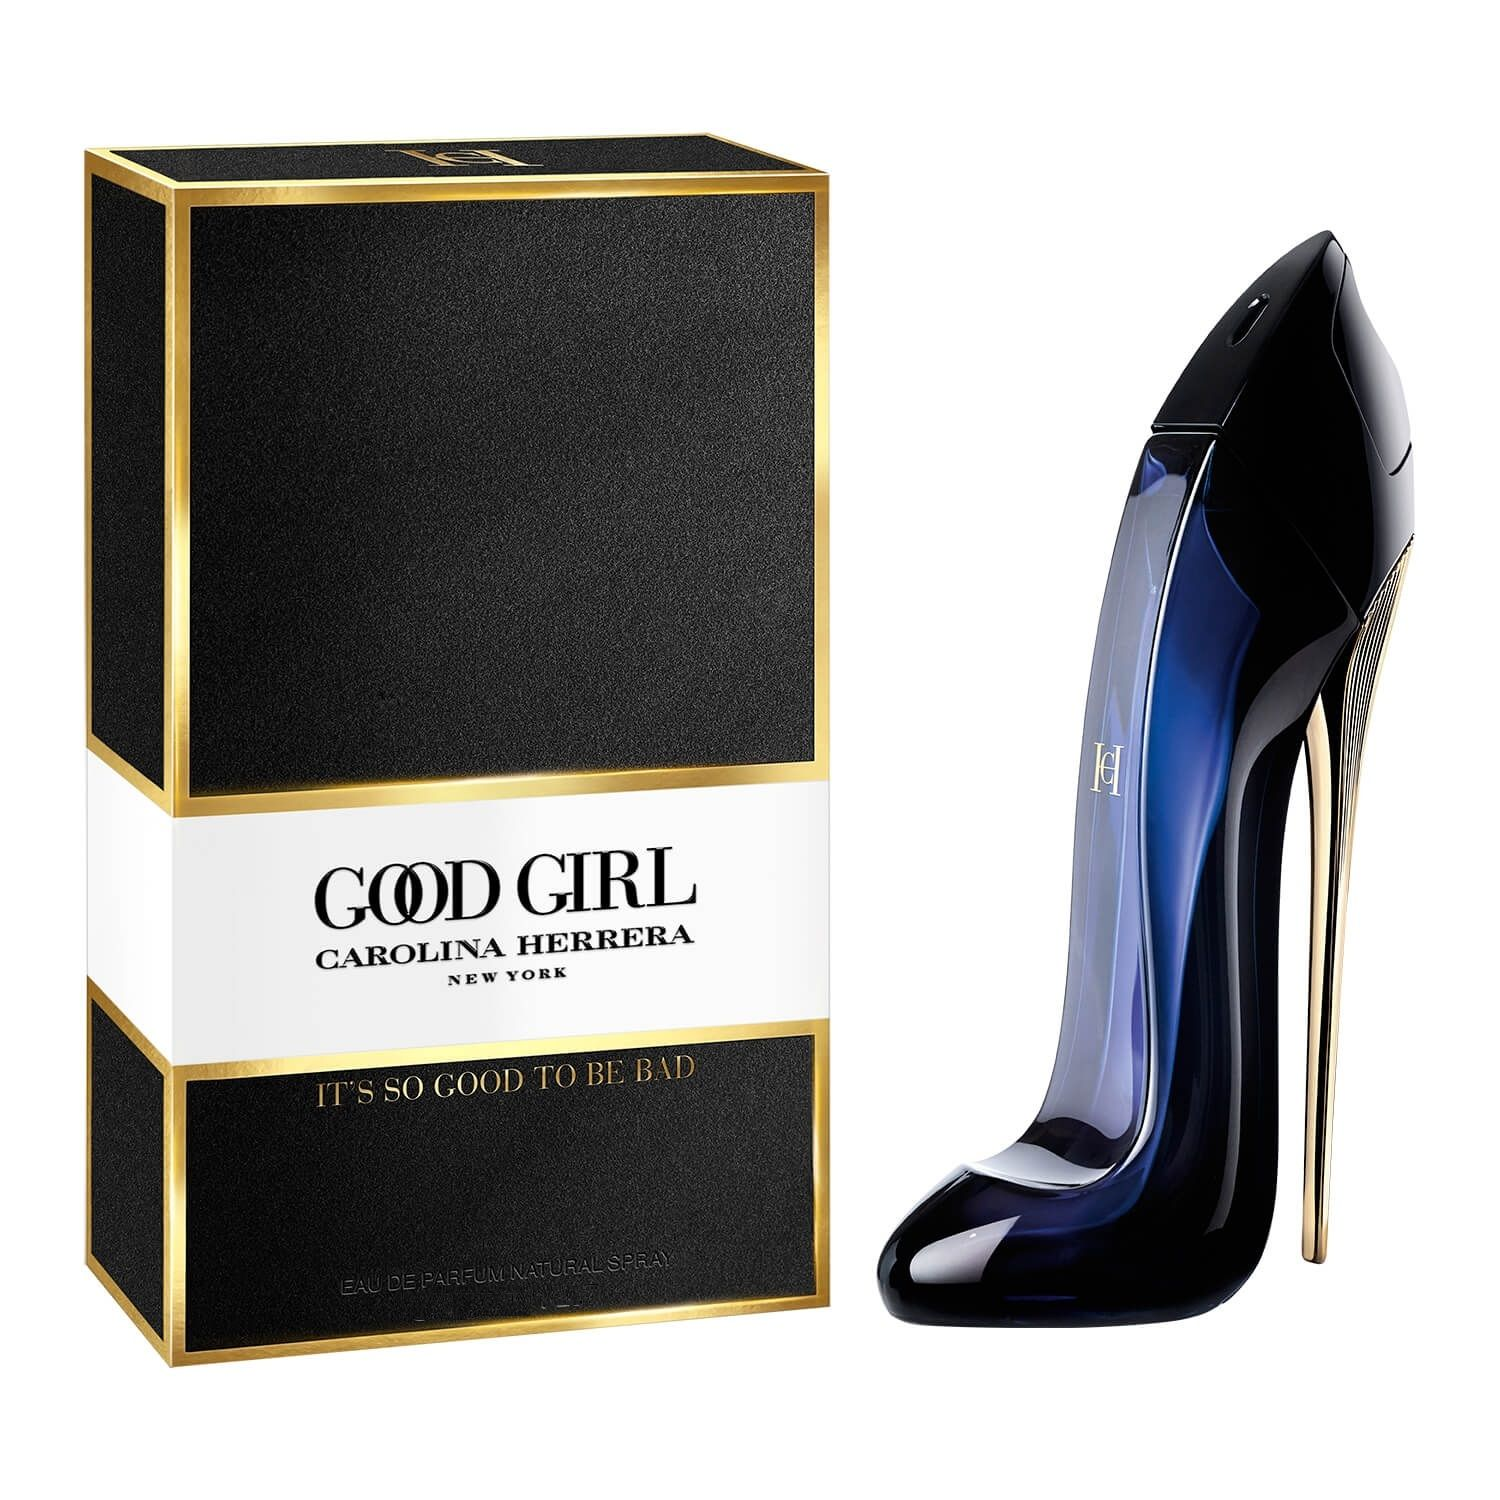 GOODGIRL EDP 30ML